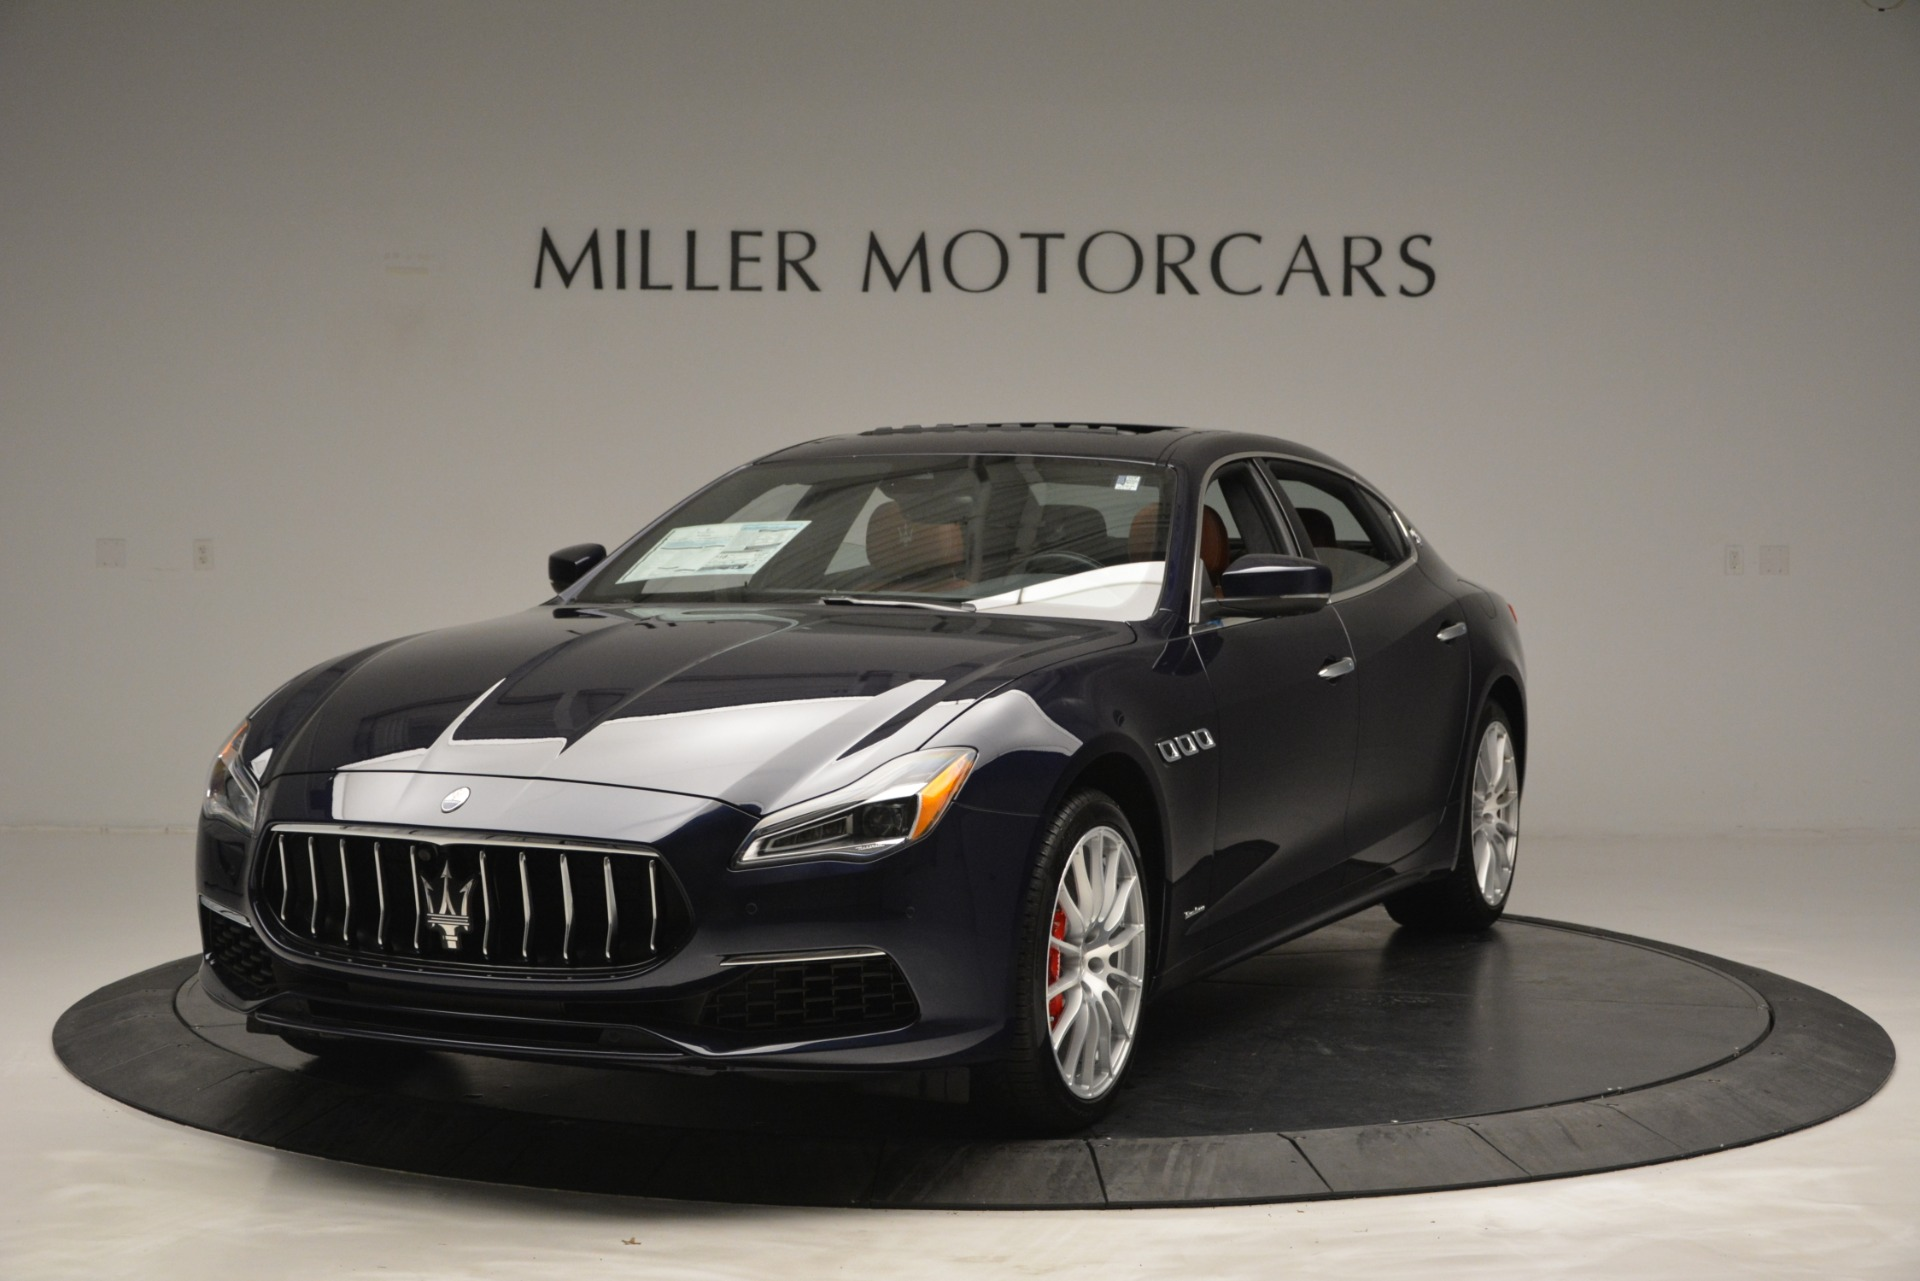 New 2019 Maserati Quattroporte S Q4 GranLusso for sale Sold at McLaren Greenwich in Greenwich CT 06830 1